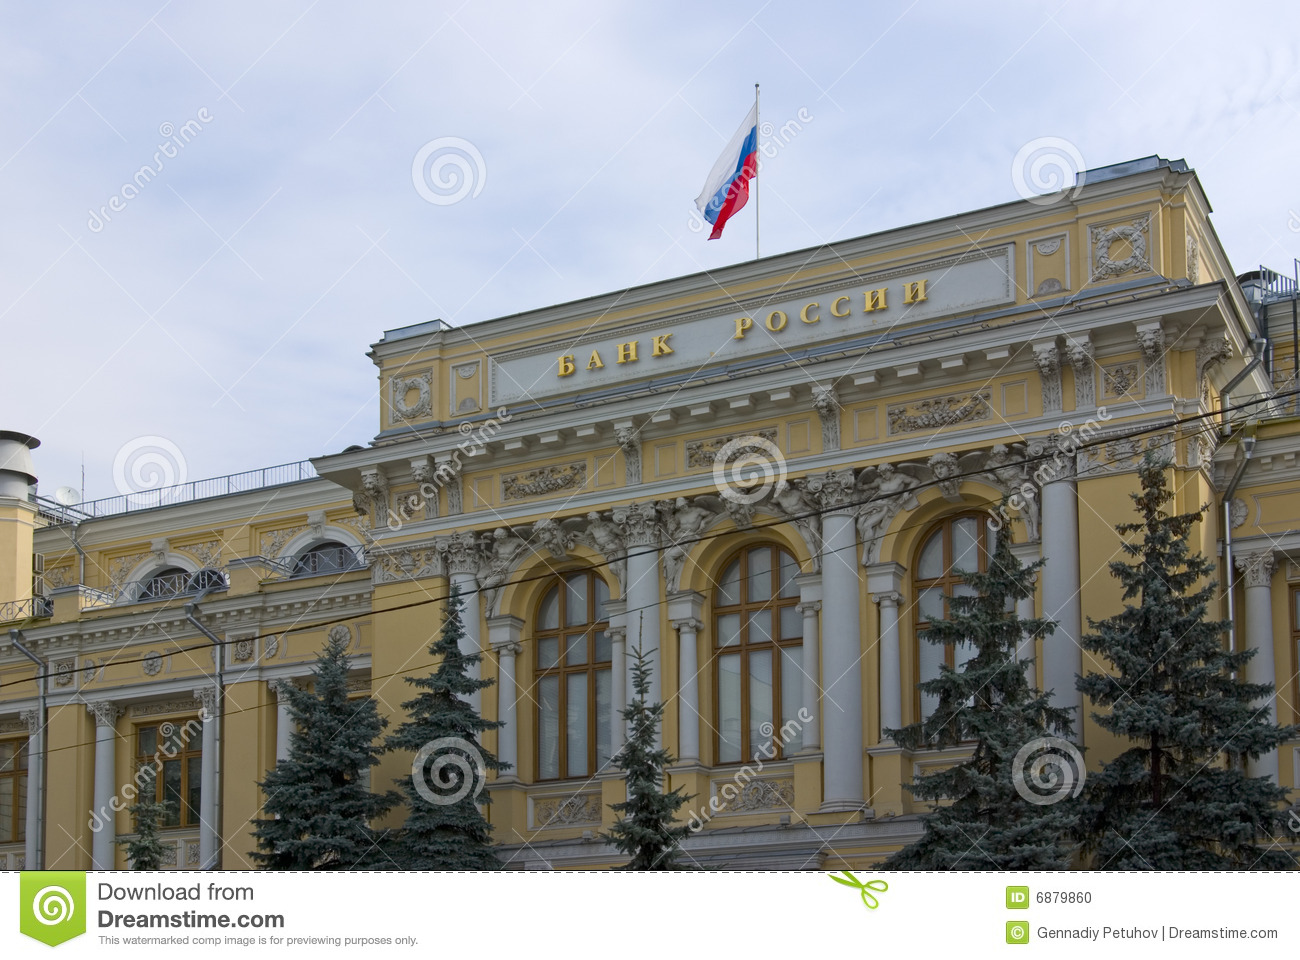 The central bank of russia - 66183